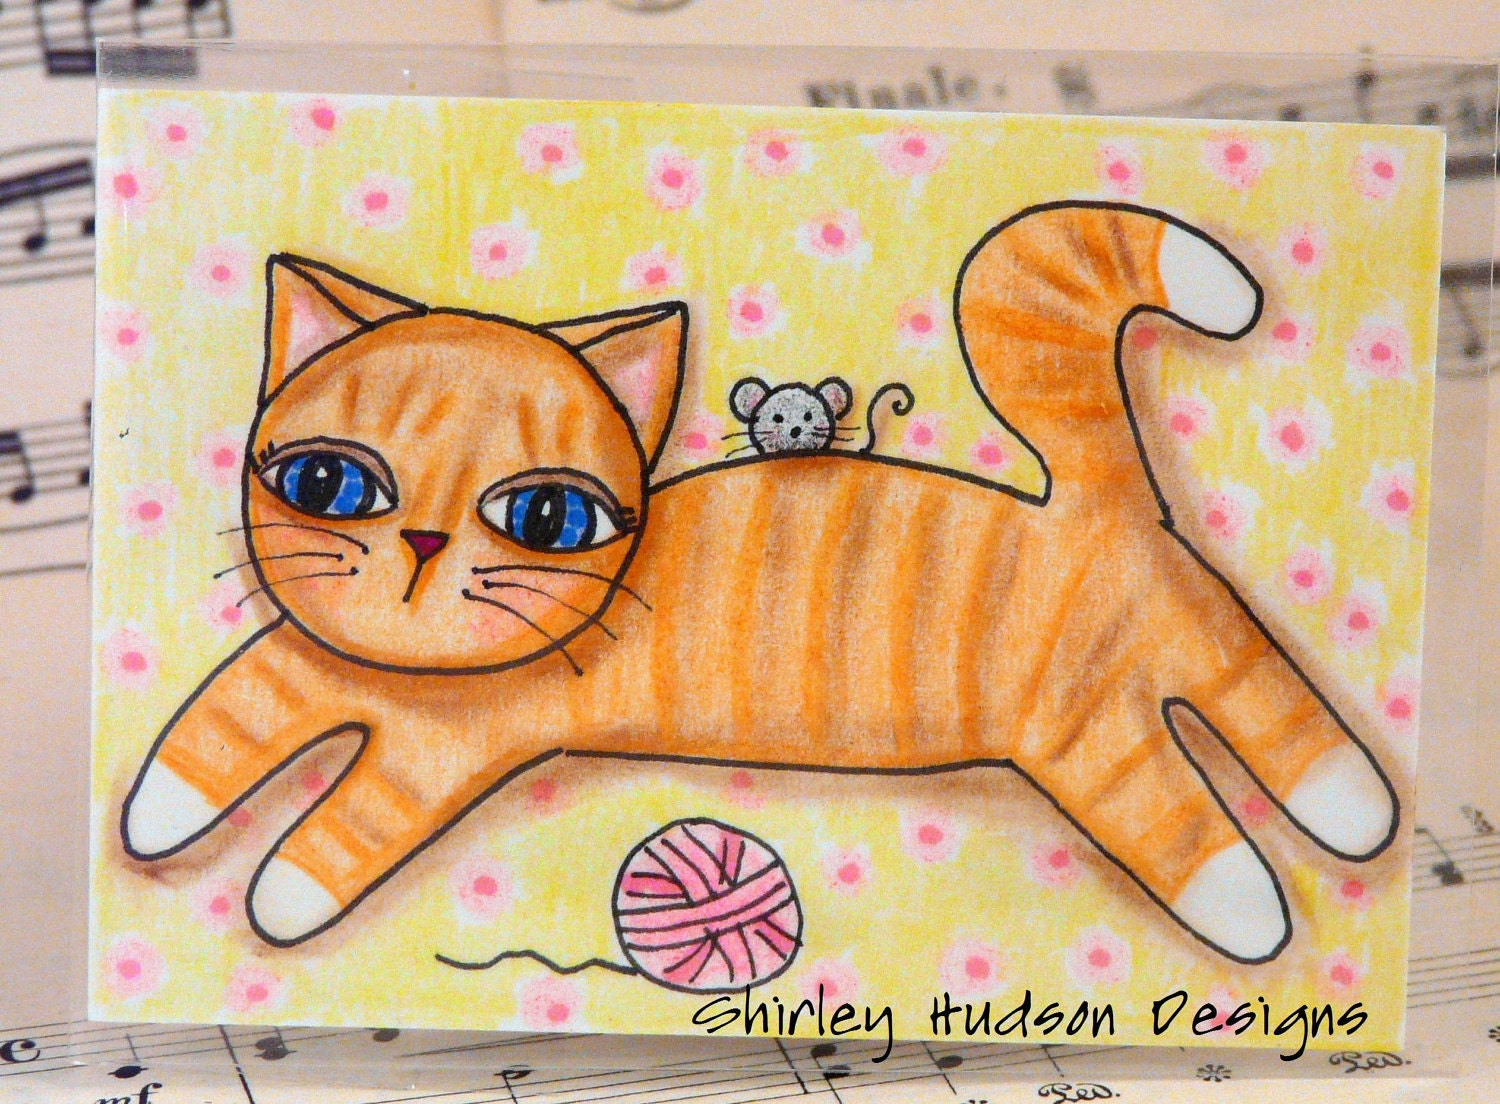 Orange Tabby cat mouse Original ATC card - ACEO yarn watercolor ink painting